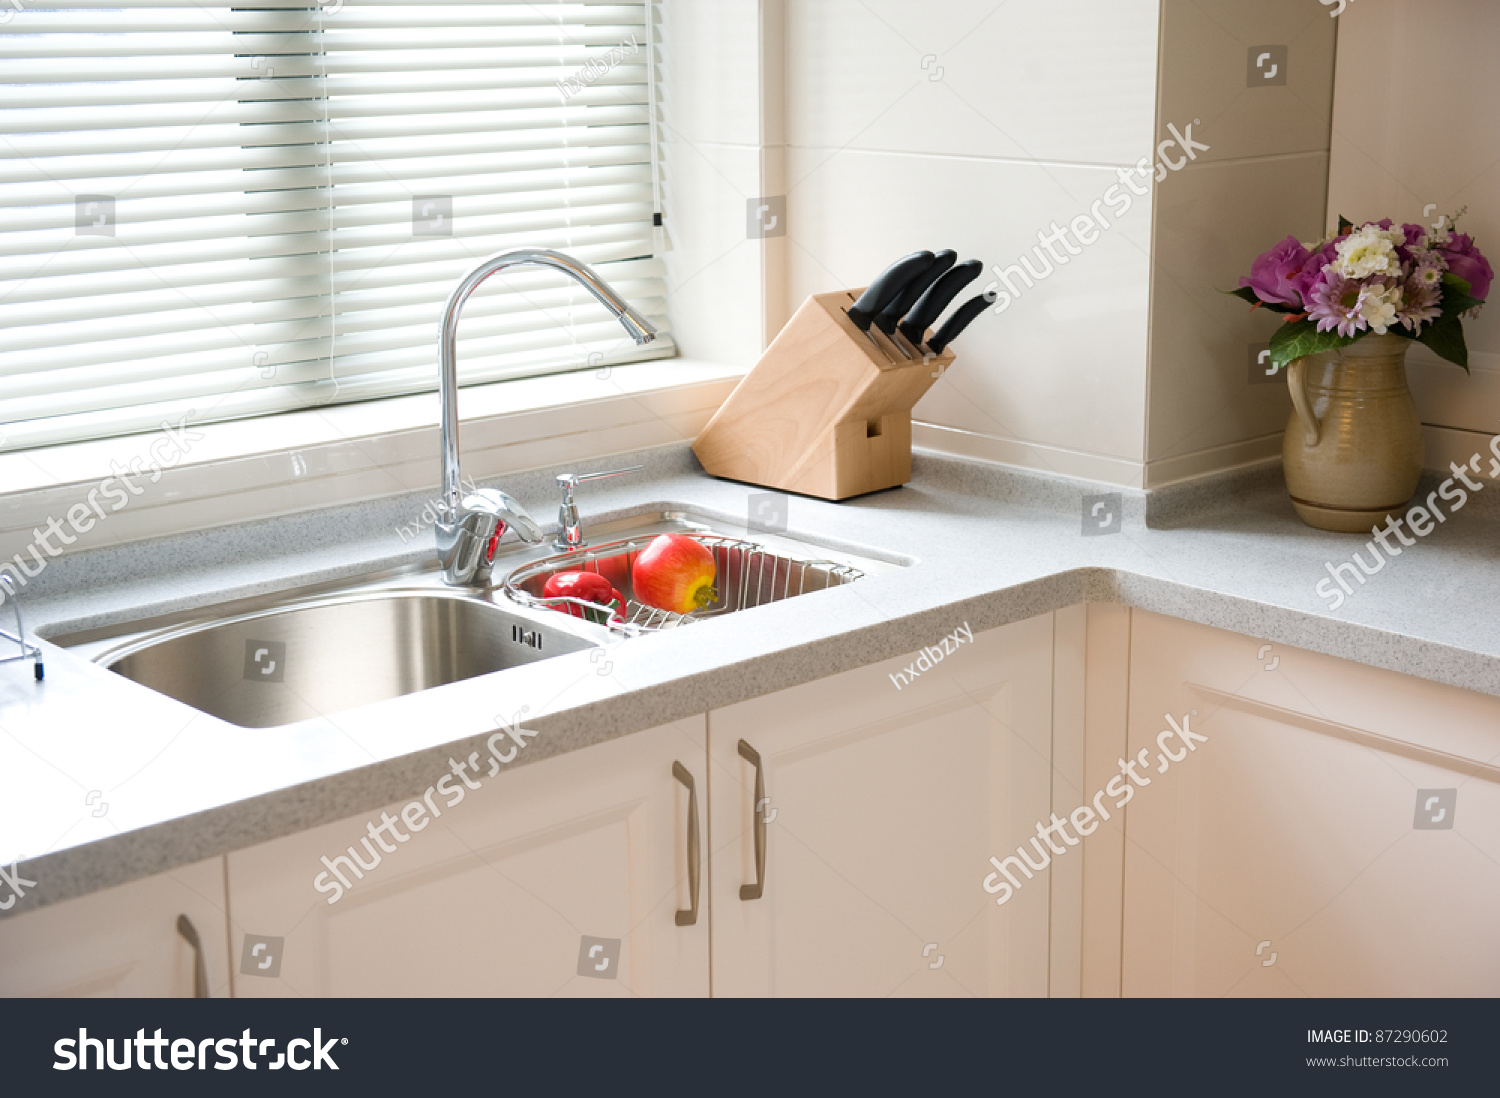 Interior design clean modern kitchen stock photo 87290602 for Clean interior design